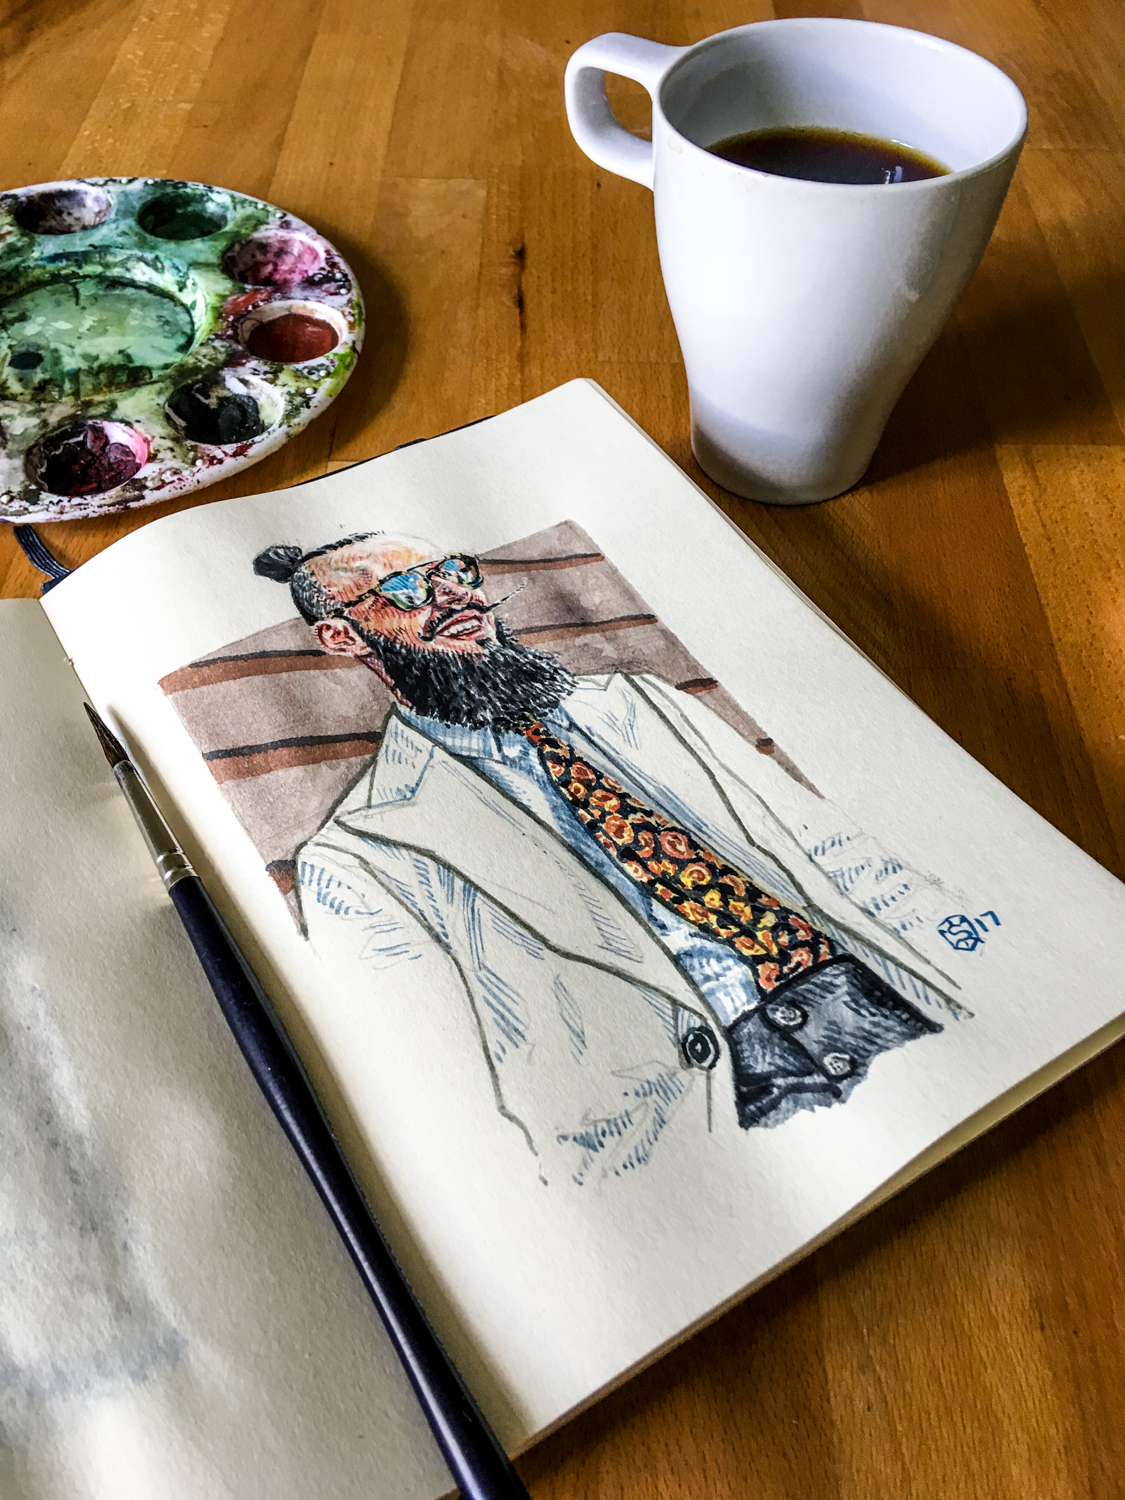 Artur Santos illustrated portrait on a table with coffee